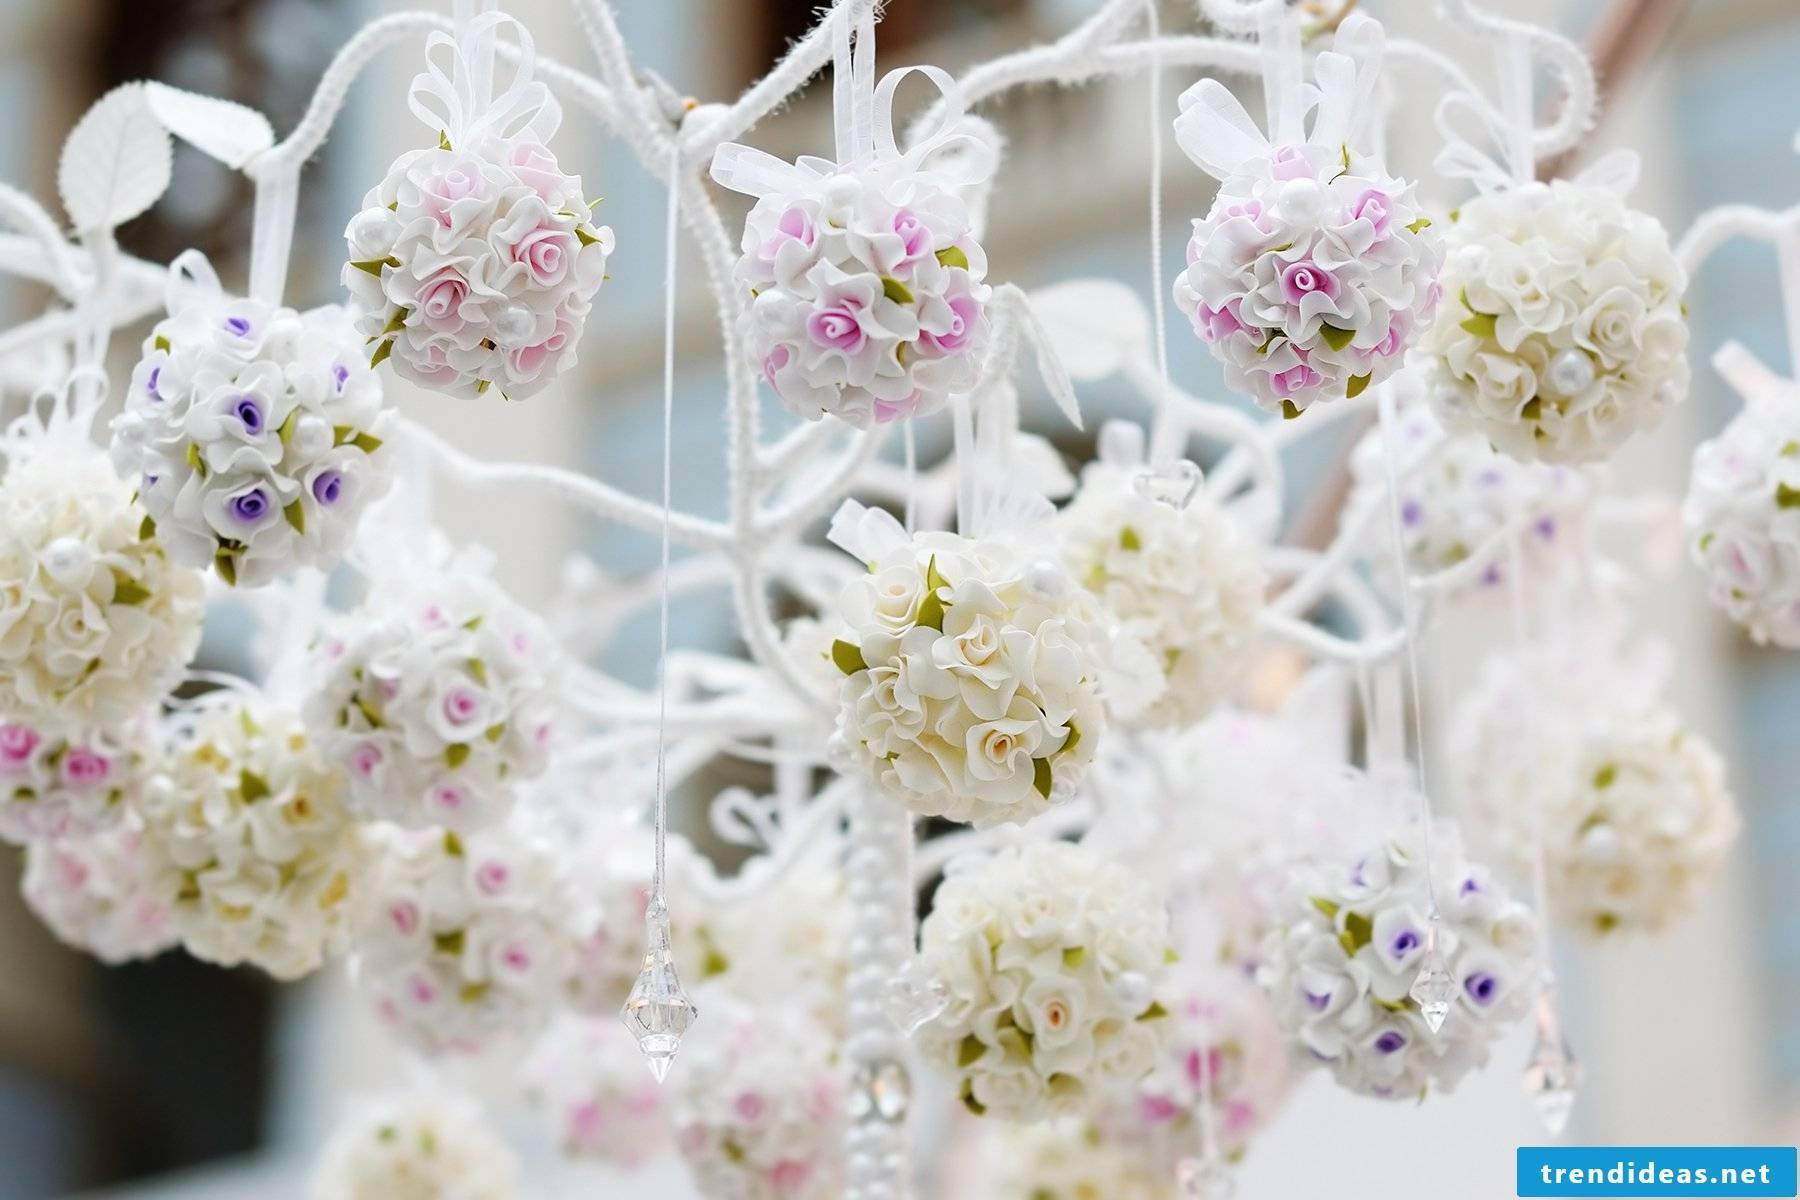 floral deco wedding ideas floral arrangements wedding wedding flowers